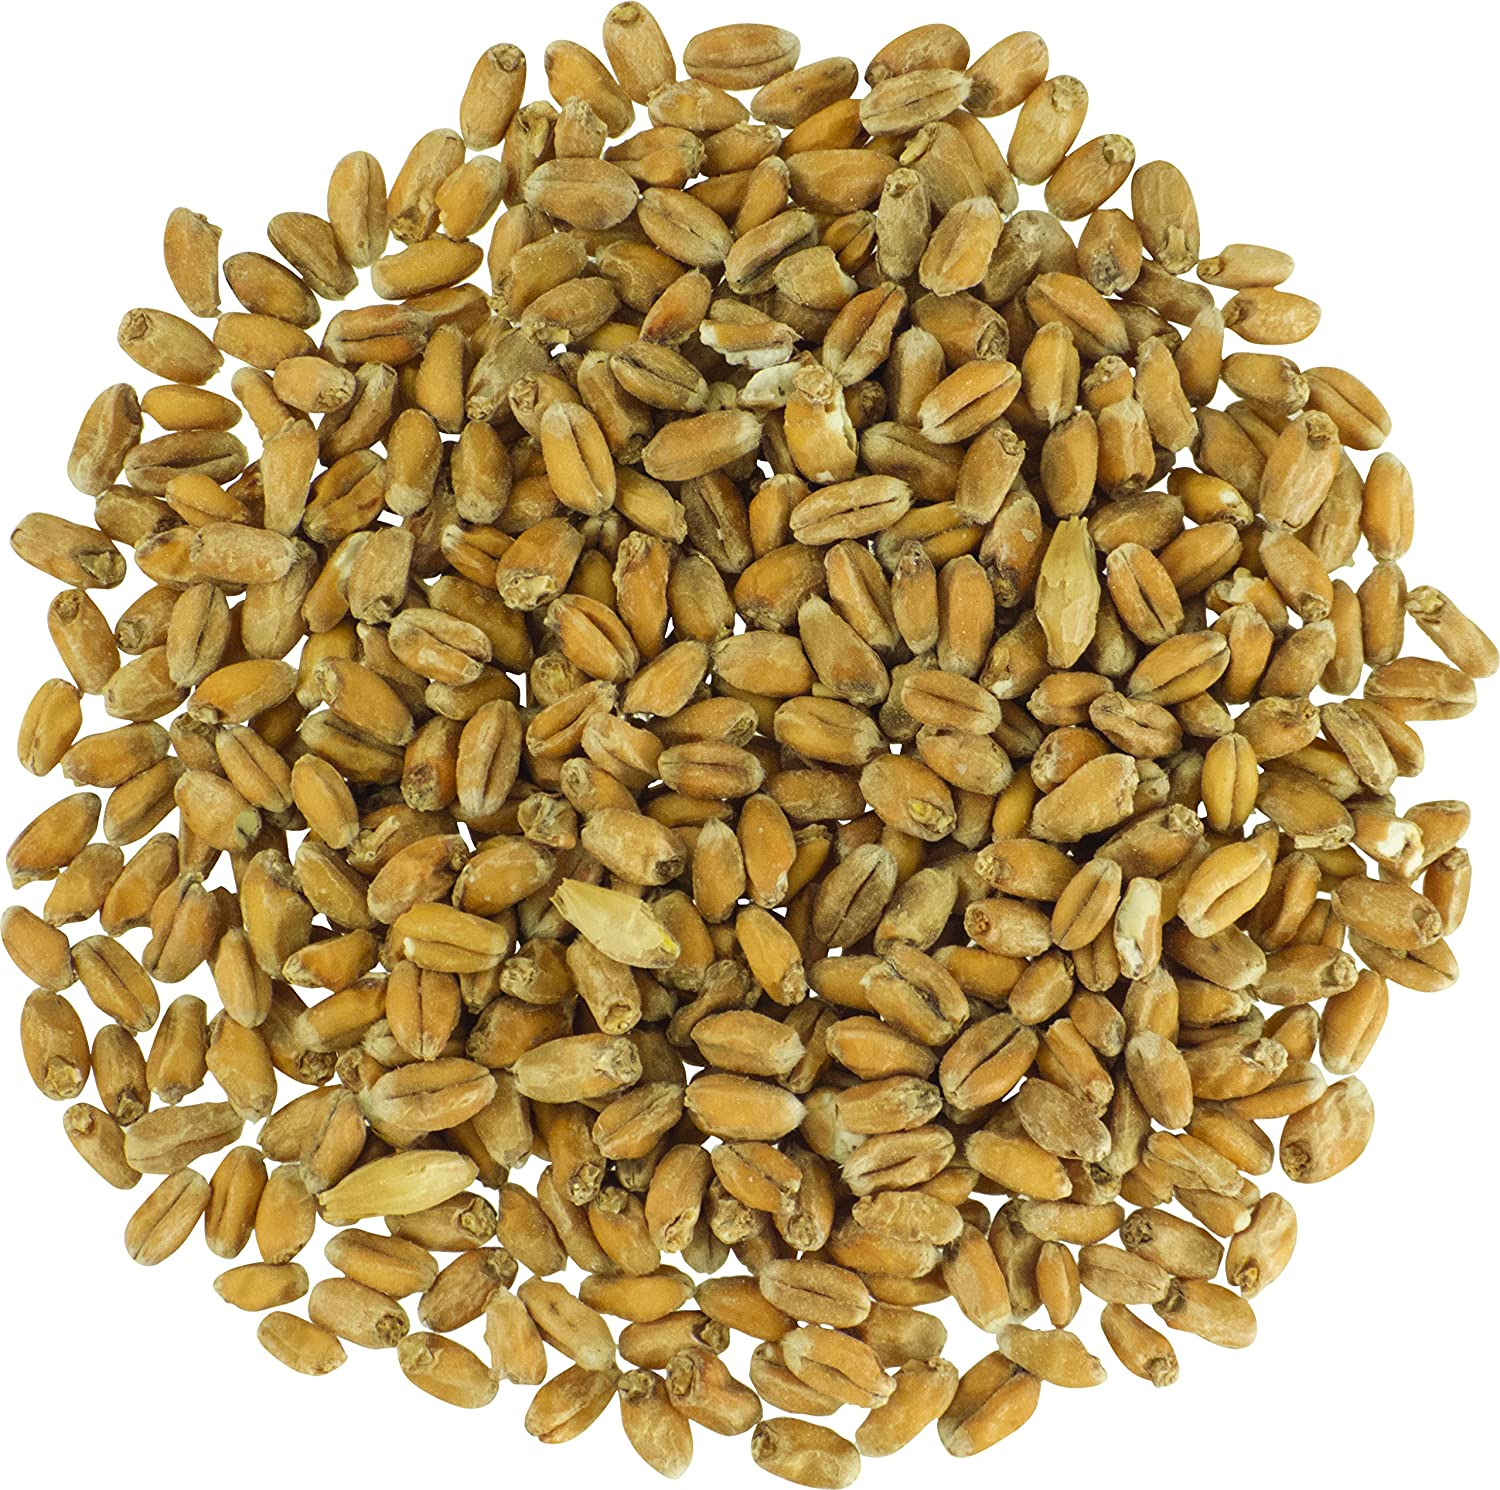 Malt - Briess Raw White Wheat Max 80% OFF 40 LB of Max 65% OFF Pack 1